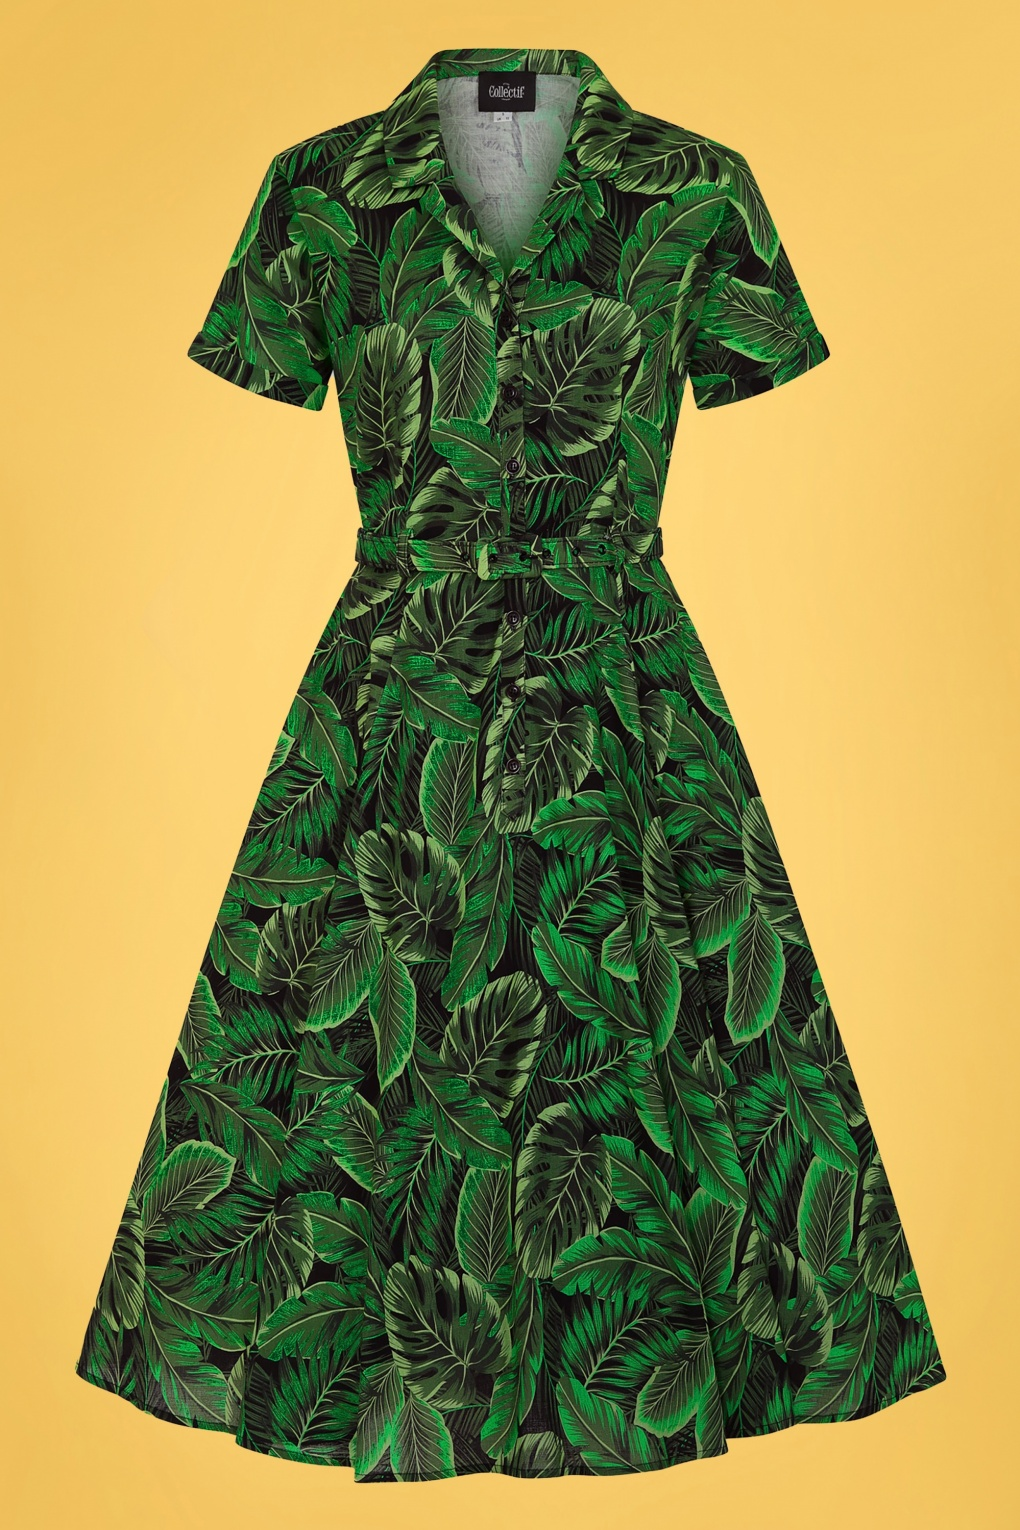 Retro Tiki Dress – Tropical, Hawaiian Dresses 50s Caterina Tropics Swing Dress in Green £24.95 AT vintagedancer.com